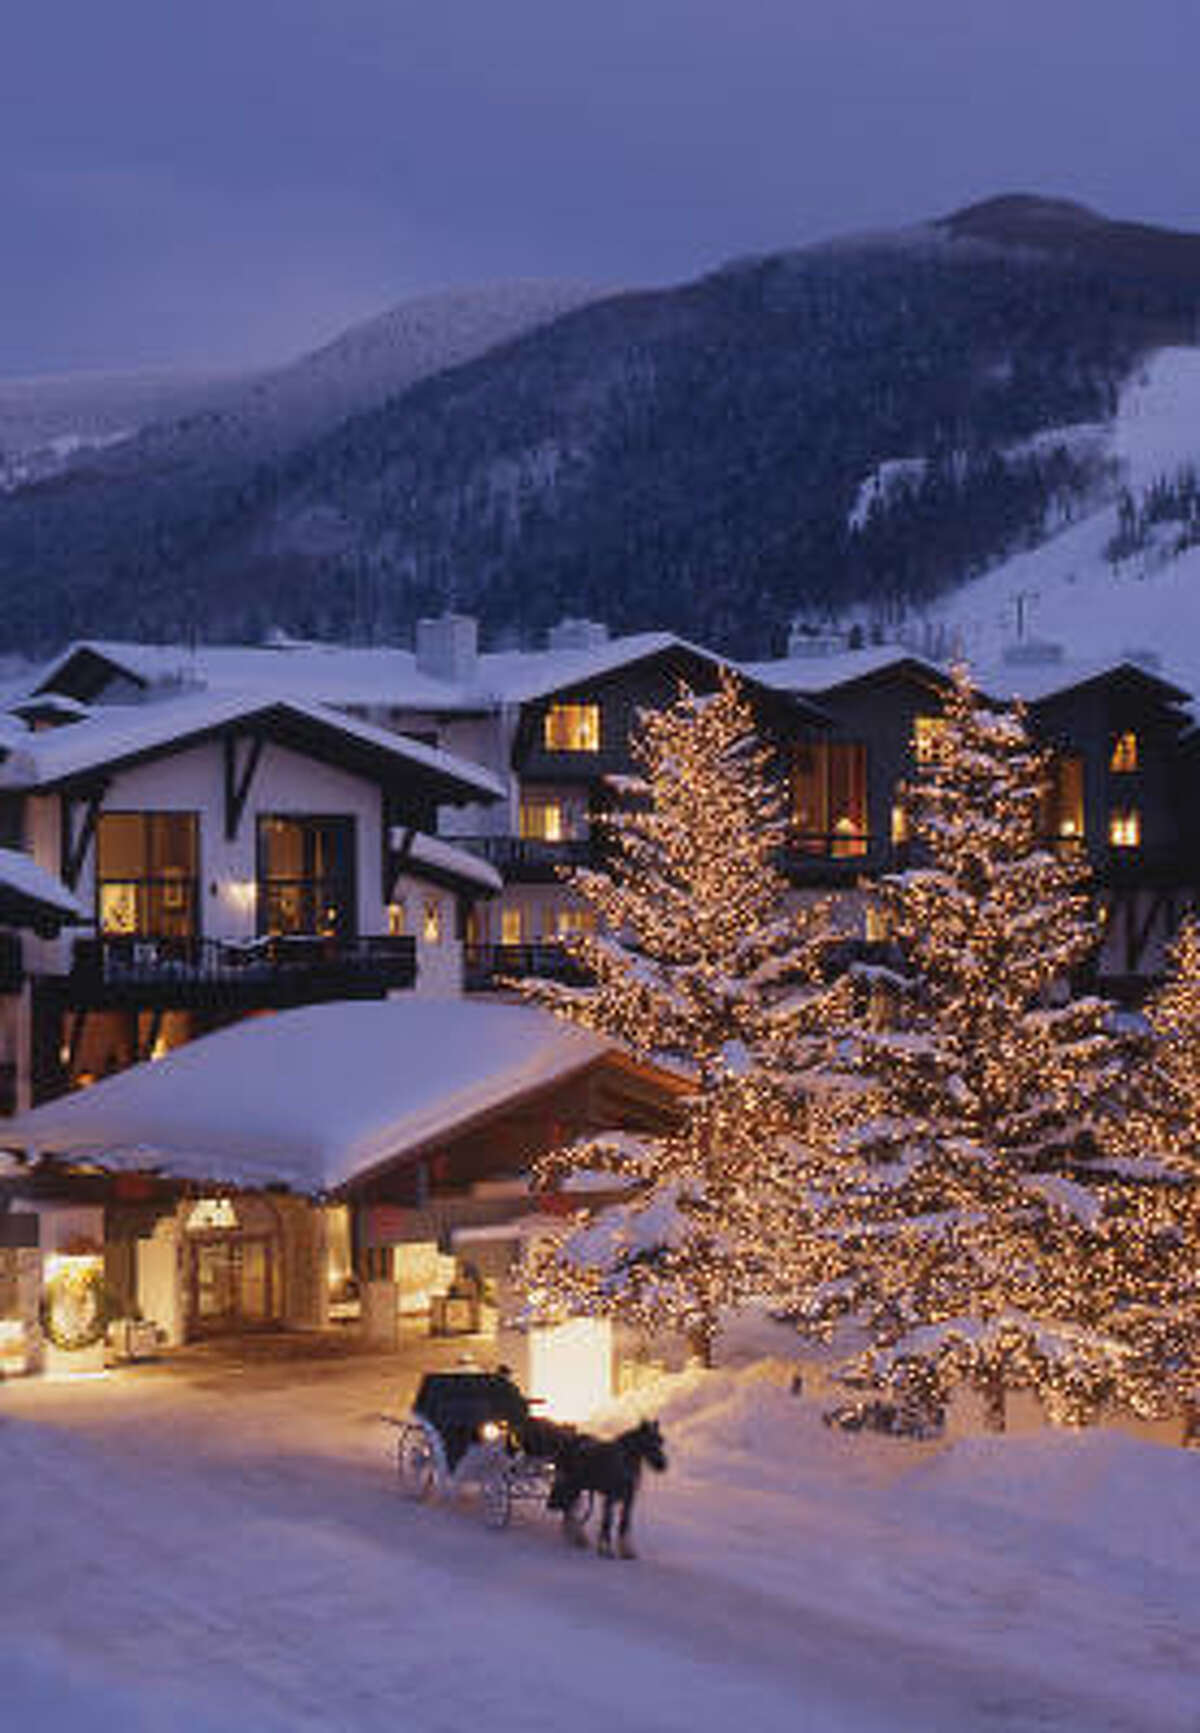 WINTER HAVEN: It's no wonder Vail is perennially popular. This winter wonderland scene outside the Lodge at Vail sets the mood. WINTER HAVEN: It's no wonder Vail is perennially popular. This winter wonderland scene outside the Lodge at Vail sets the mood.